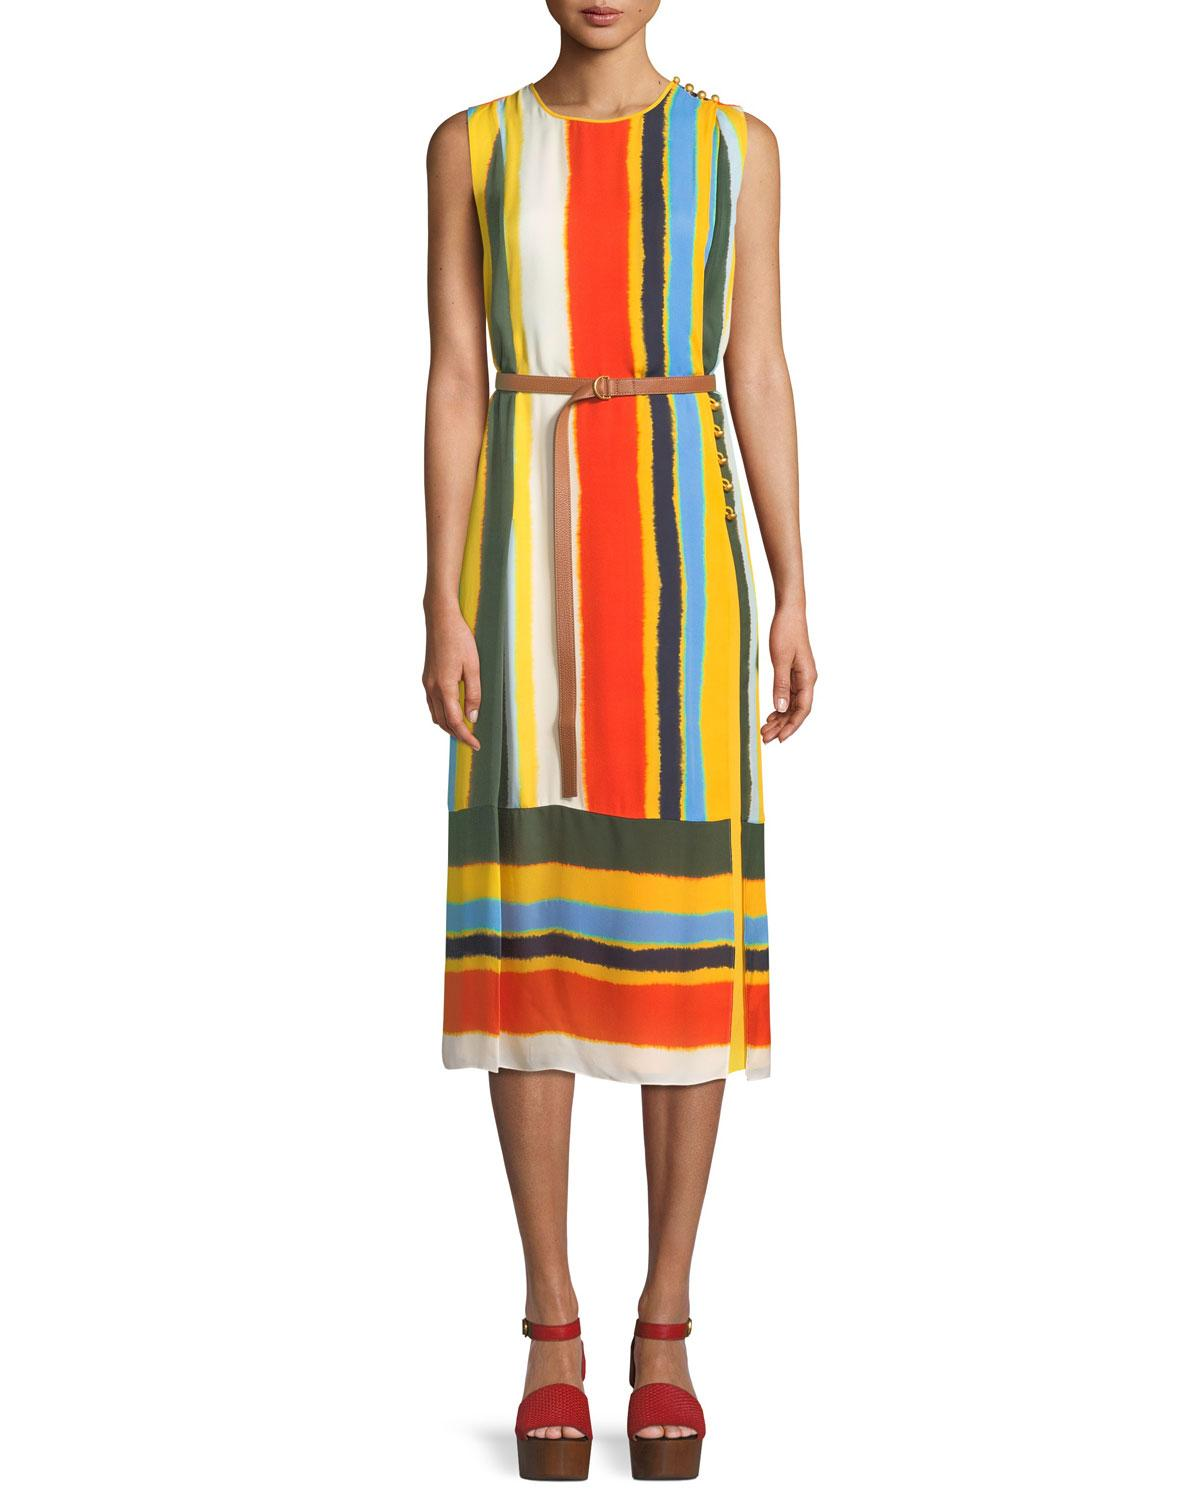 a00cf69df72f6 Tory Burch Bettina Runway Striped Silk Dress In Multicoloured